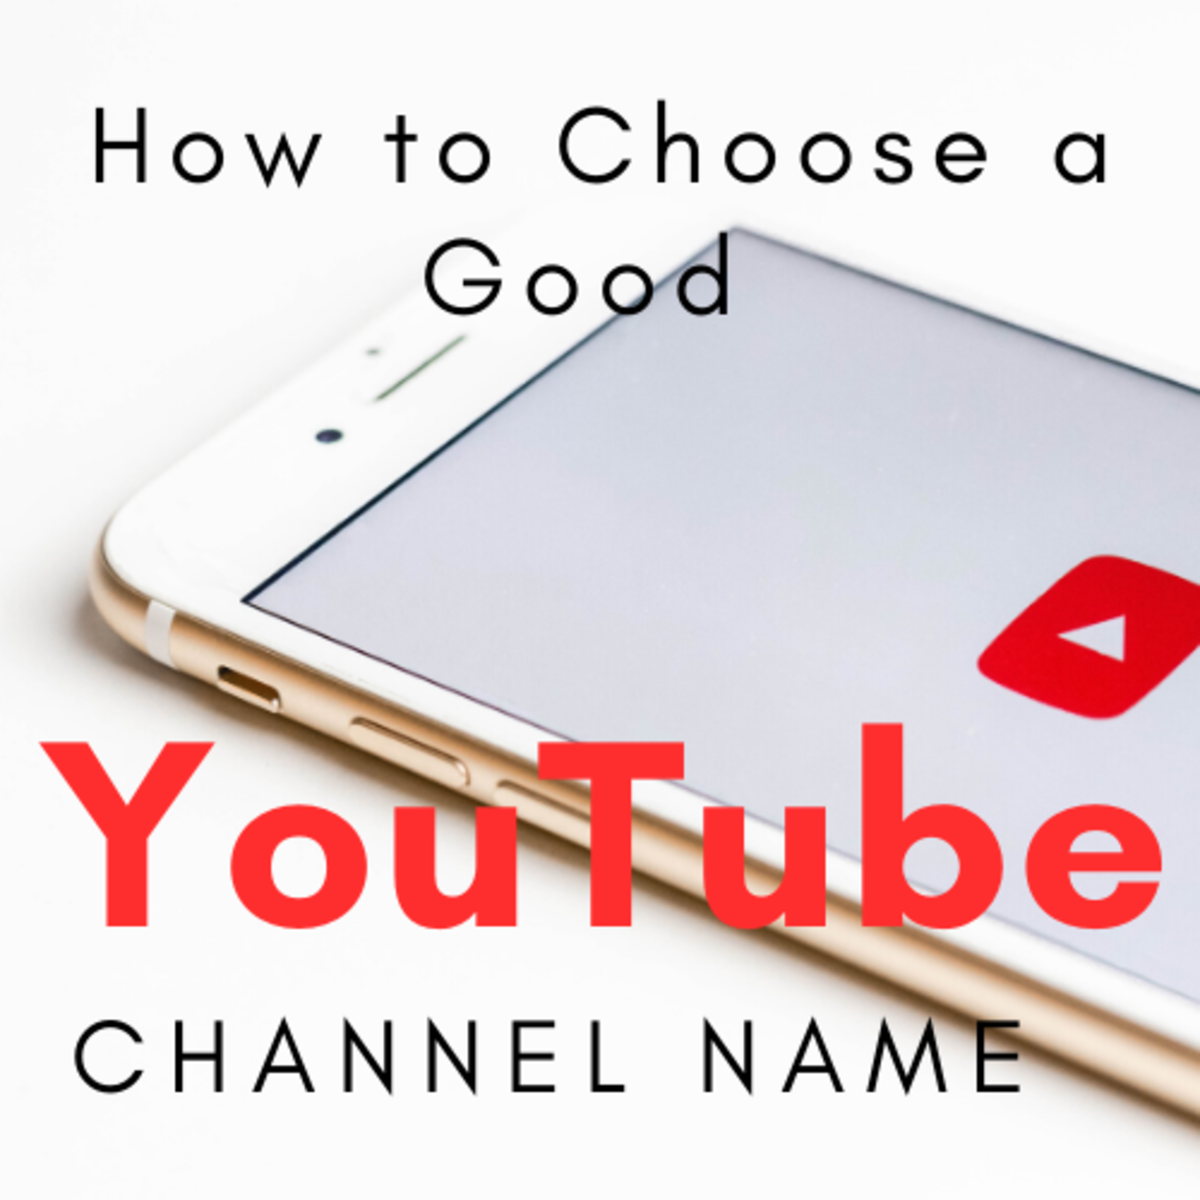 YouTube Channel Name Ideas for Your Business or Brand